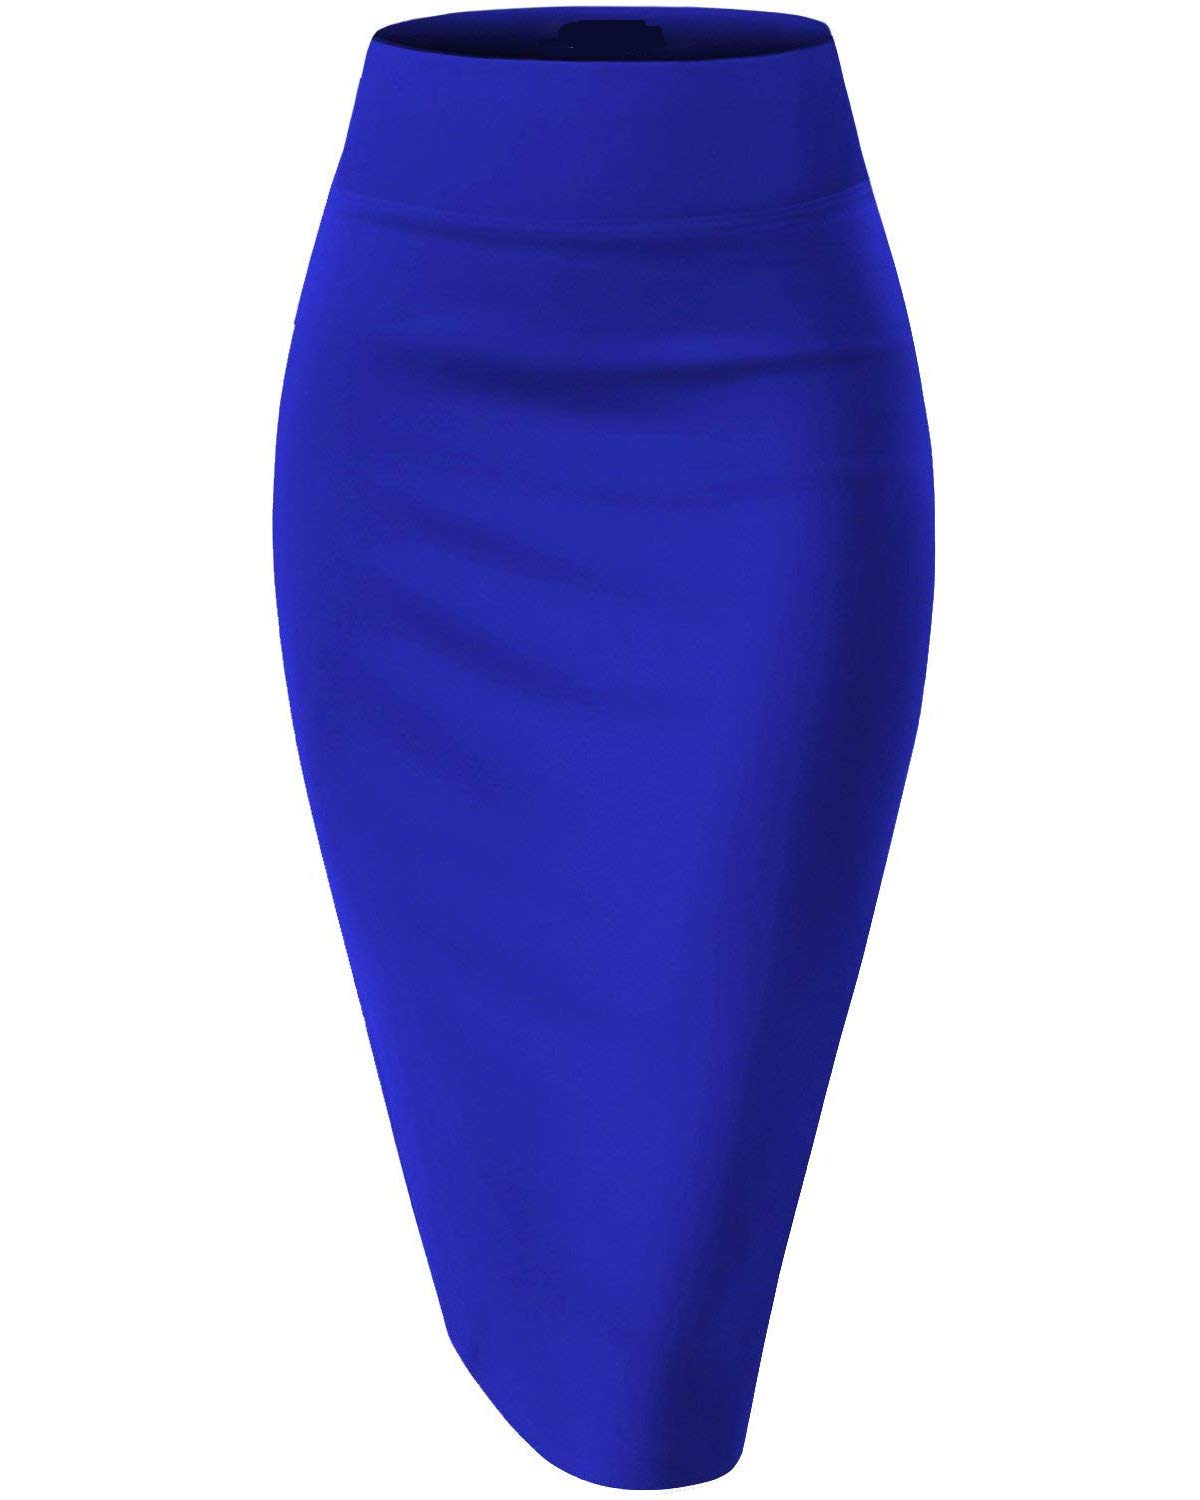 KENANCY Women's High Waist Bodycon Long Skirt Knee Length Pencil Skirts Casual Solid-Blue-Large